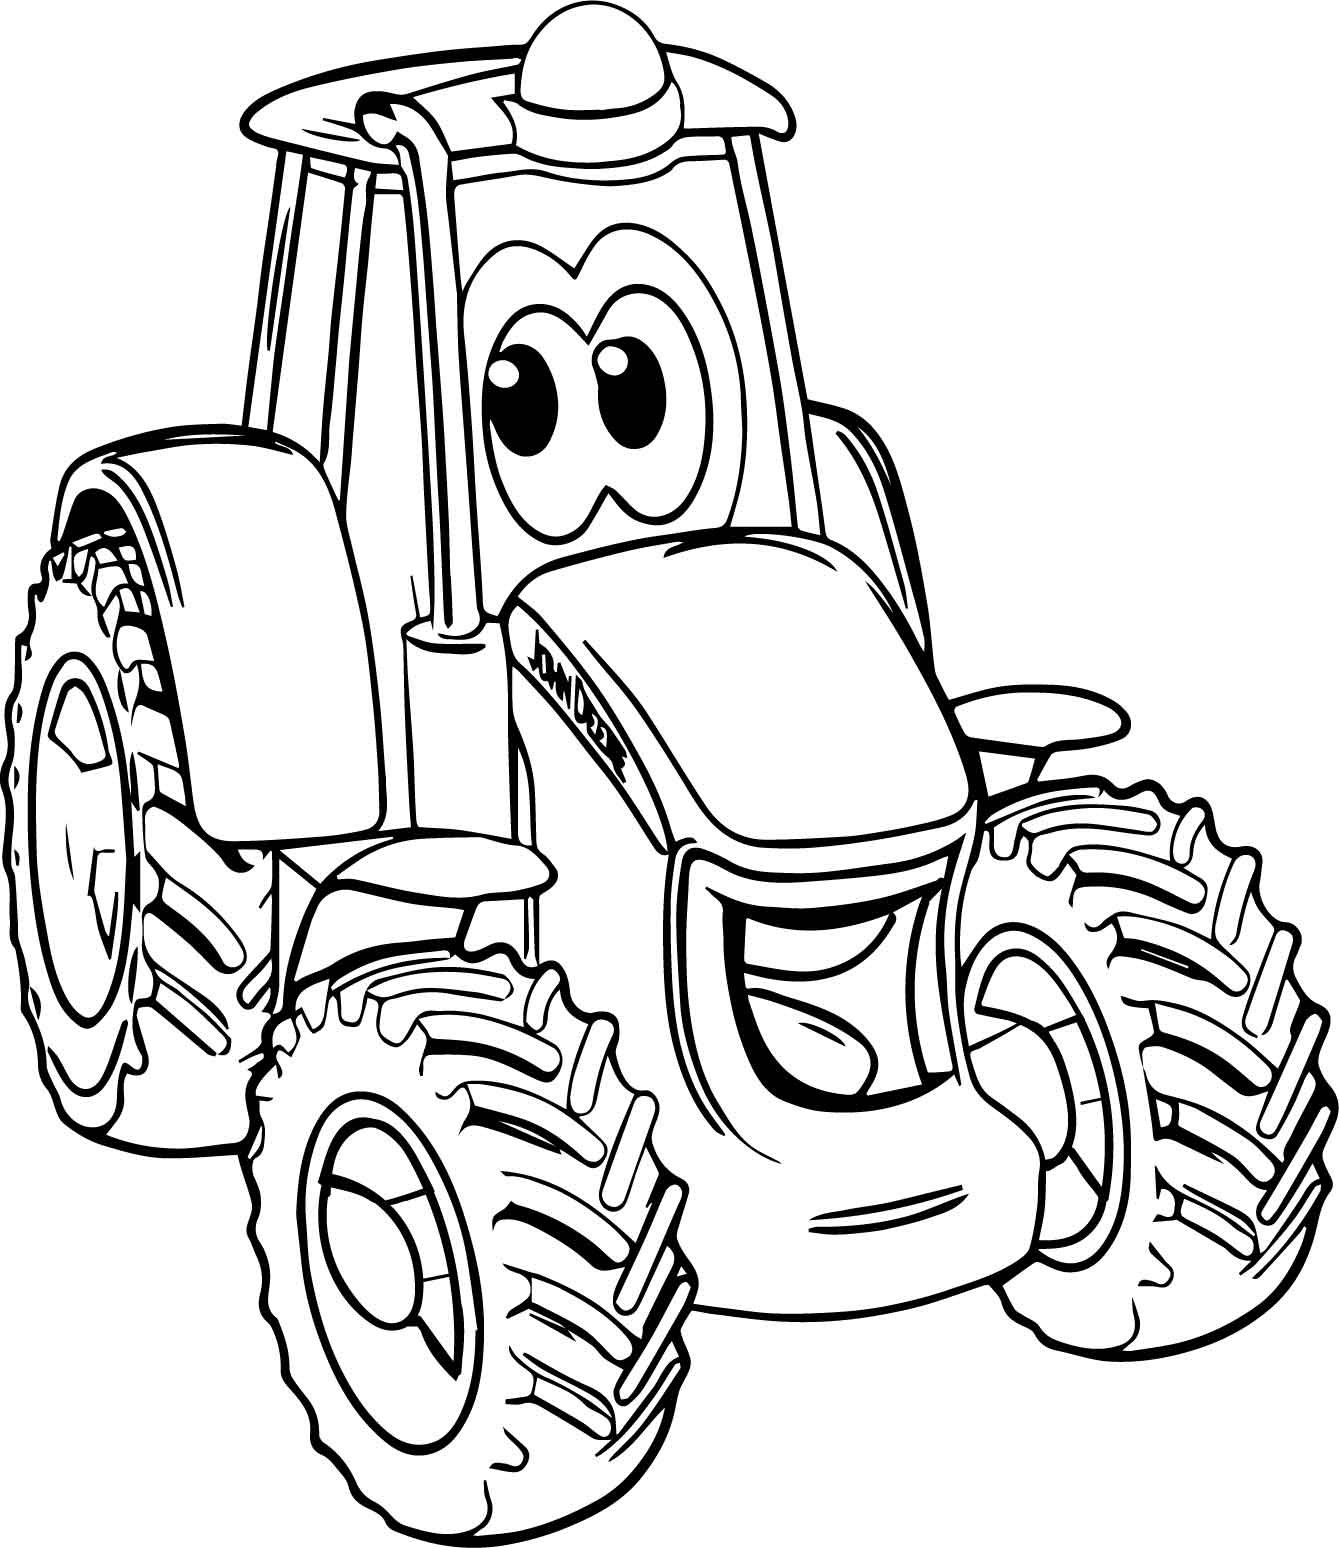 free tractor coloring pages farm implements free coloring pages pages free tractor coloring